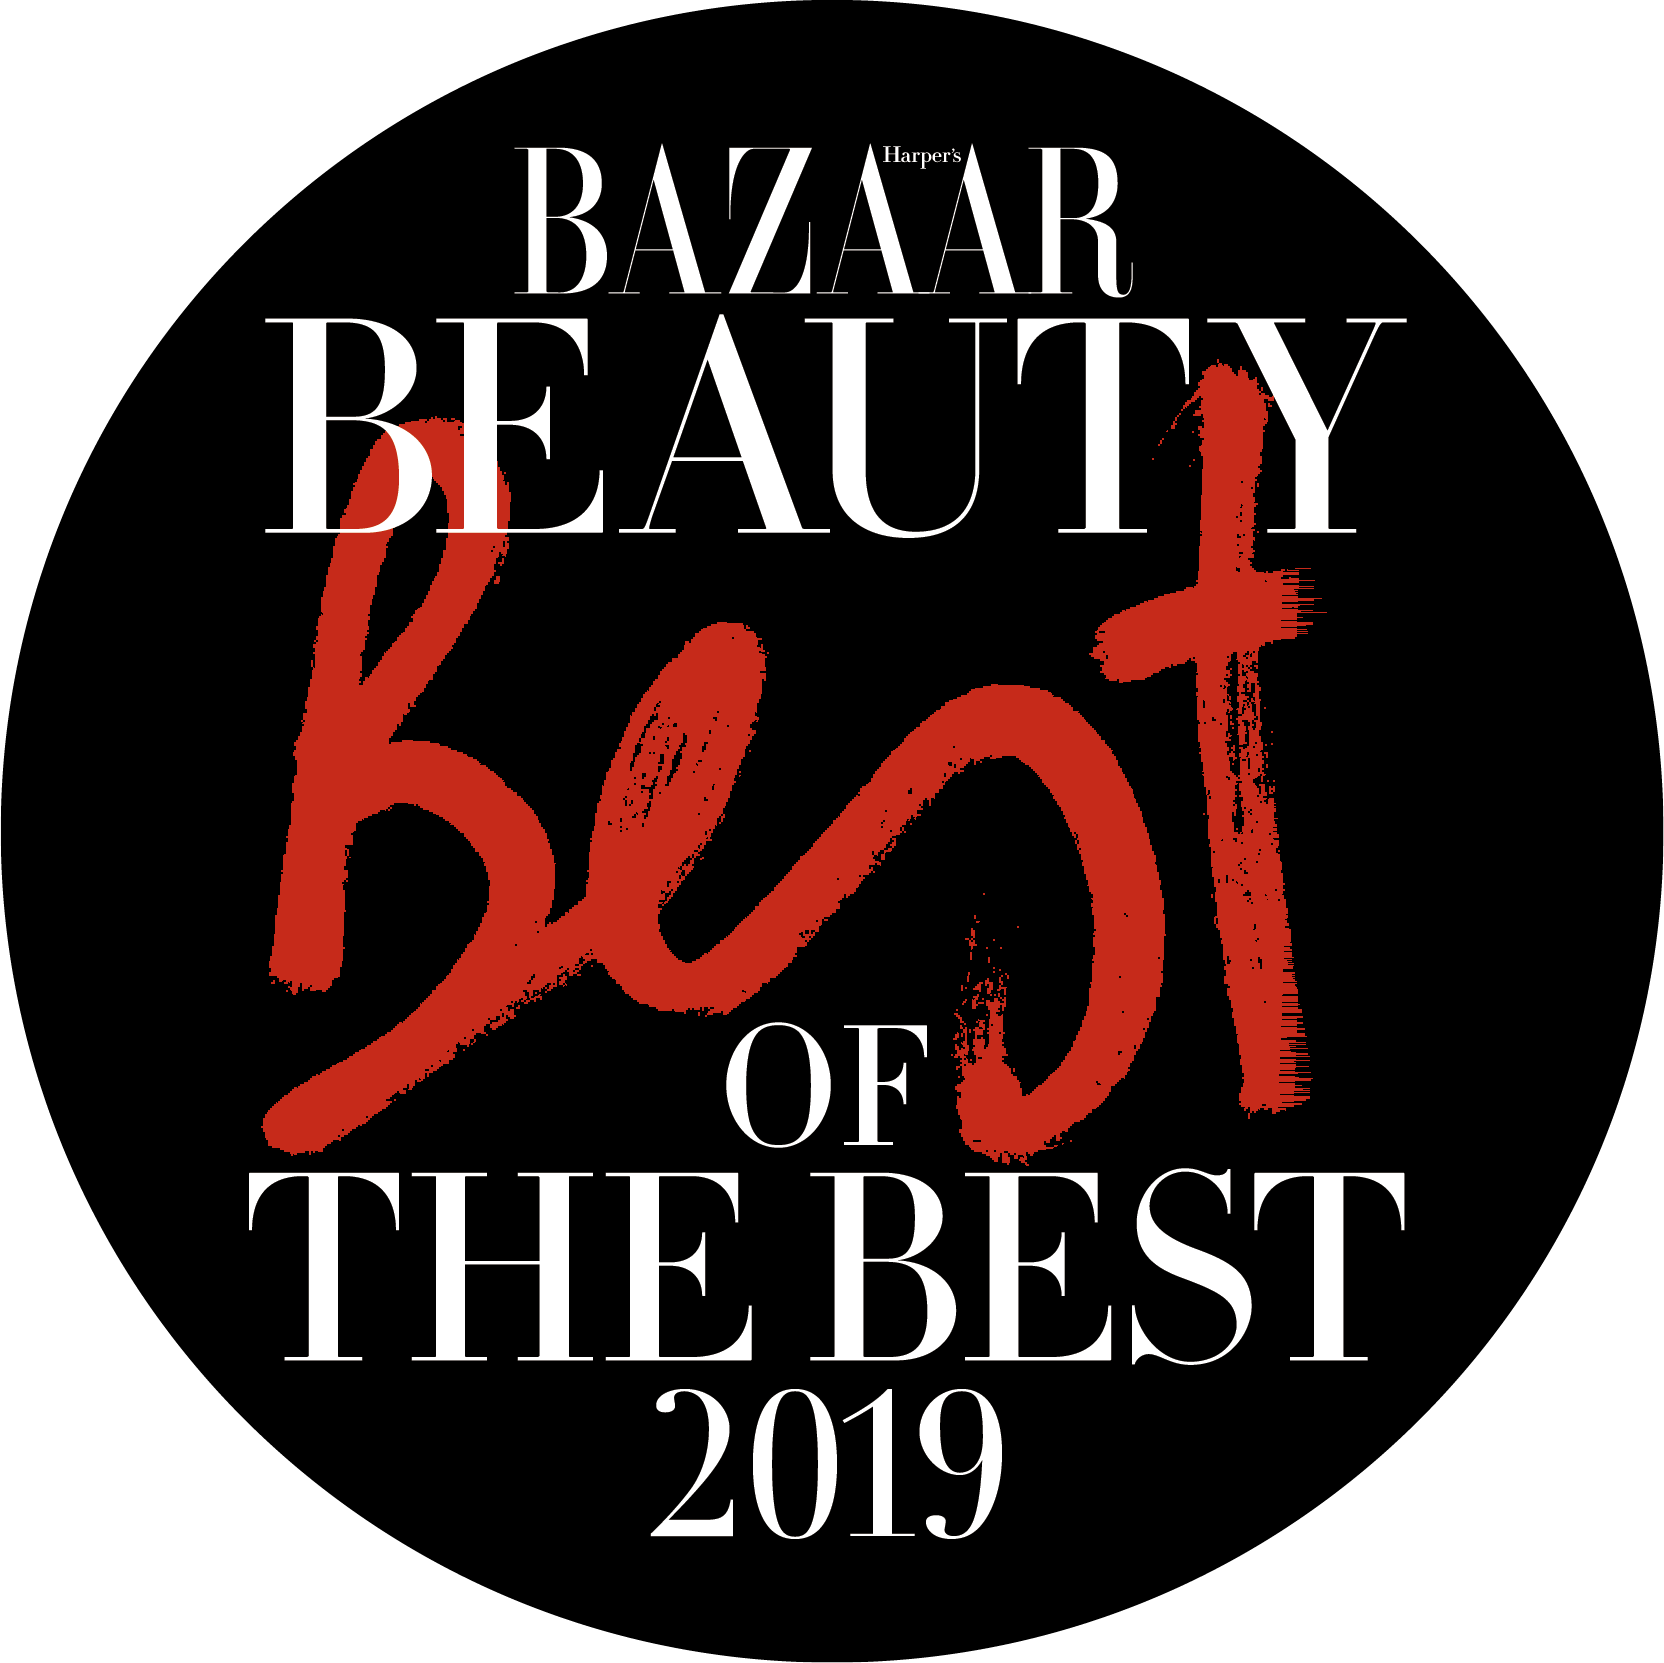 Bazaar Beauty 2019 badge